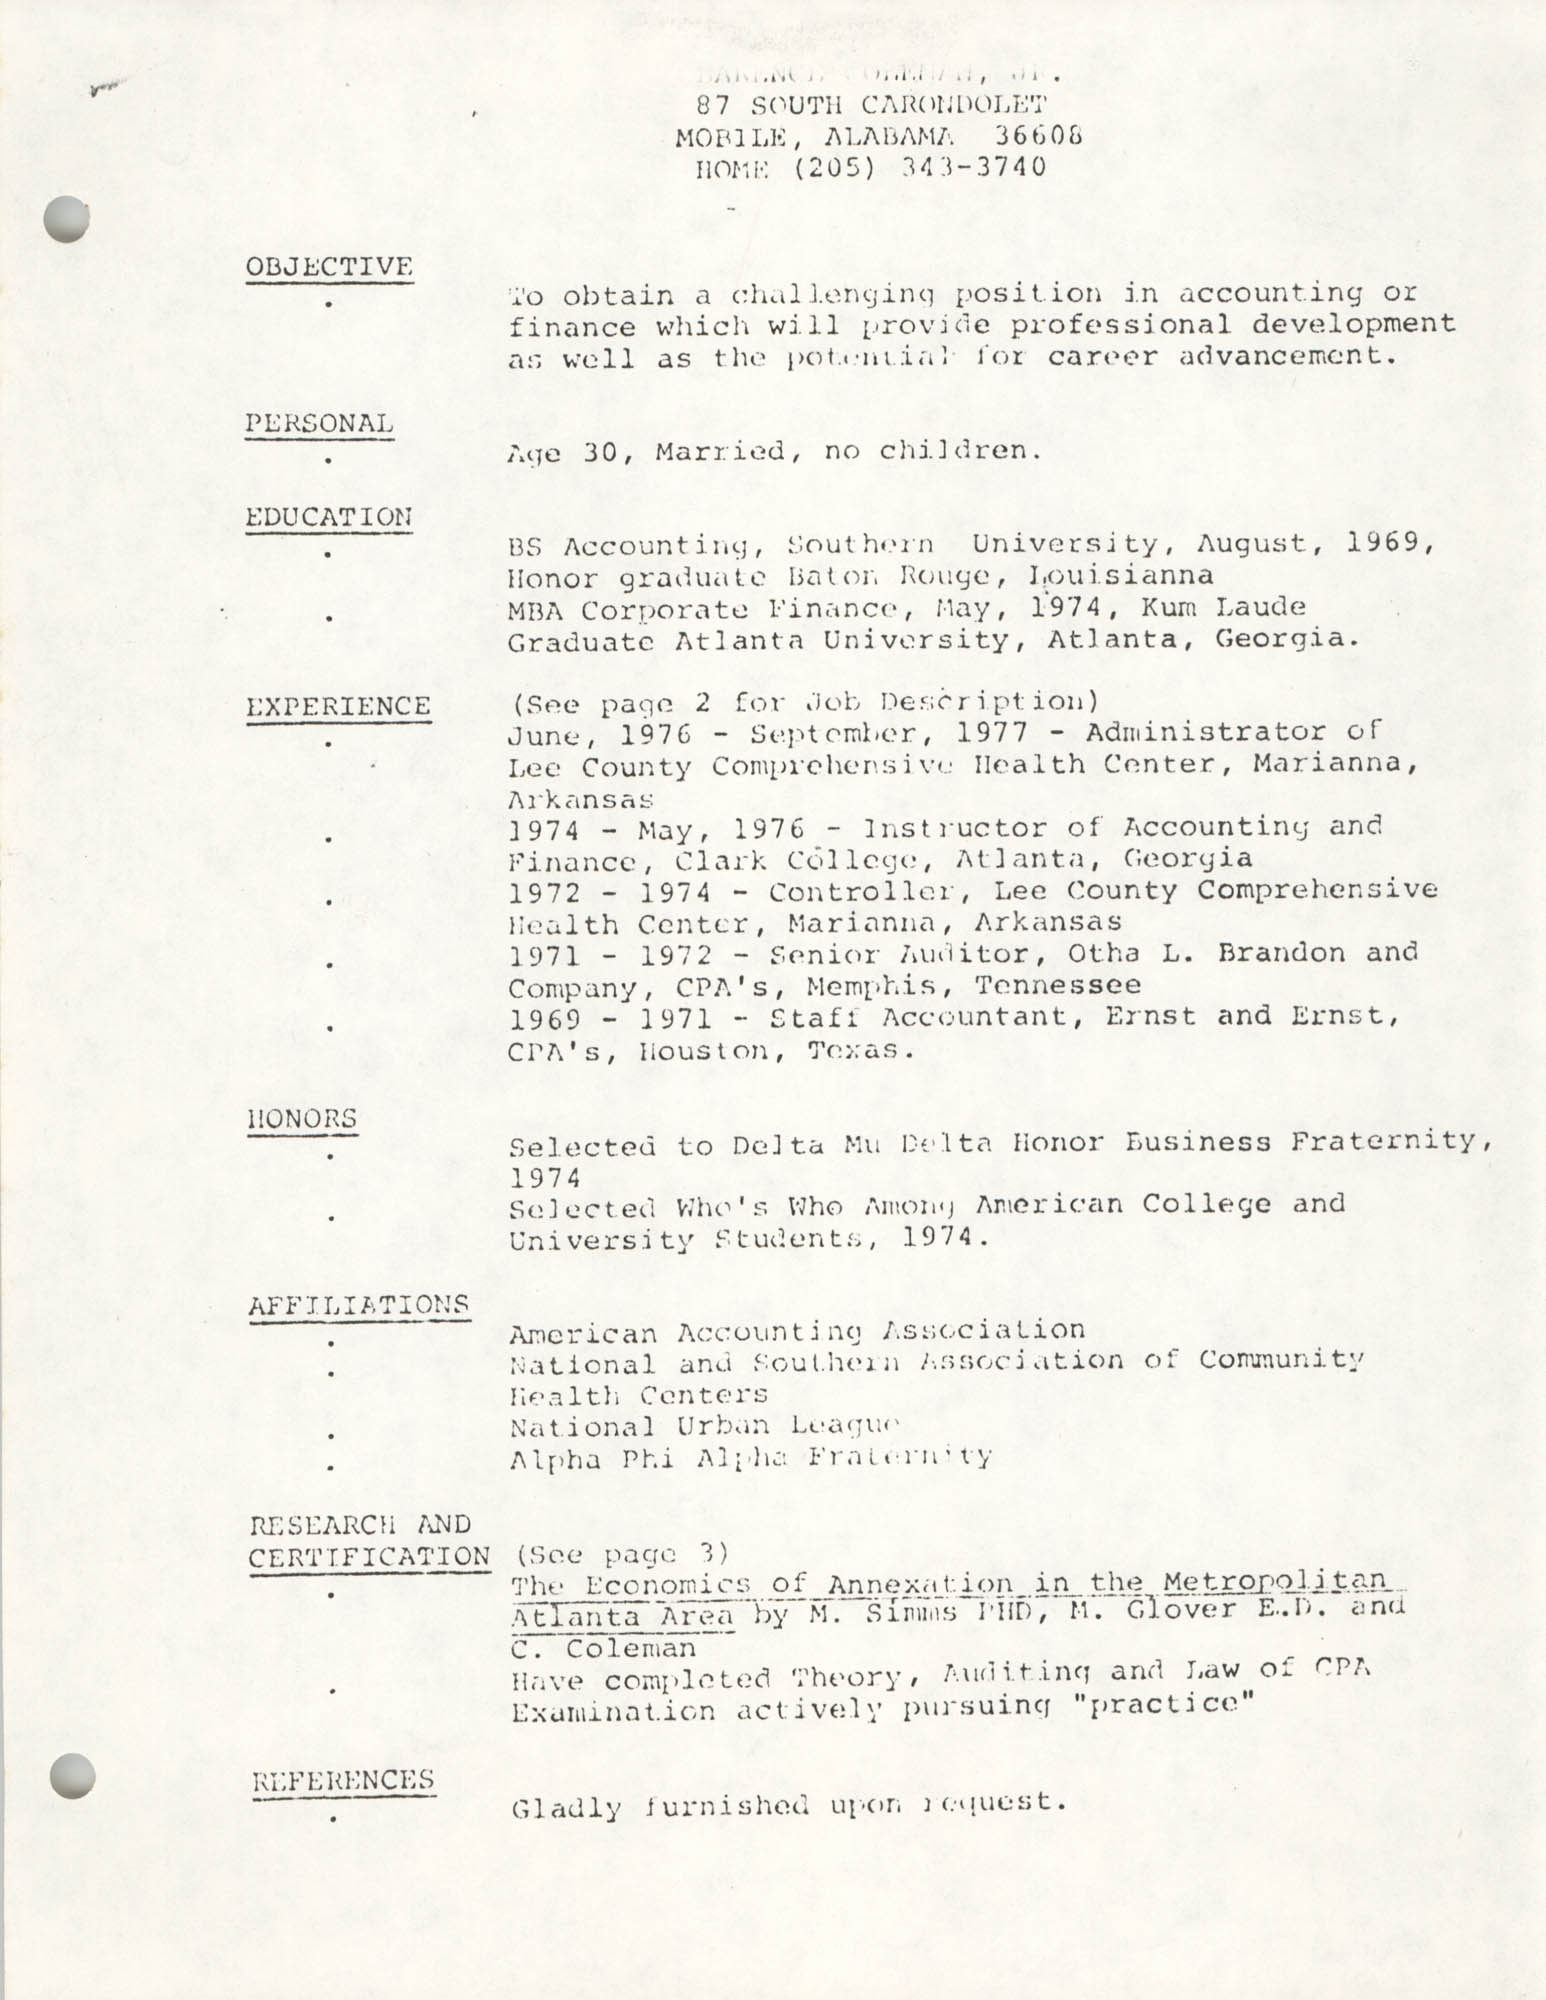 COBRA Consultant Resumes, Clarence Coleman, Jr., Page 1